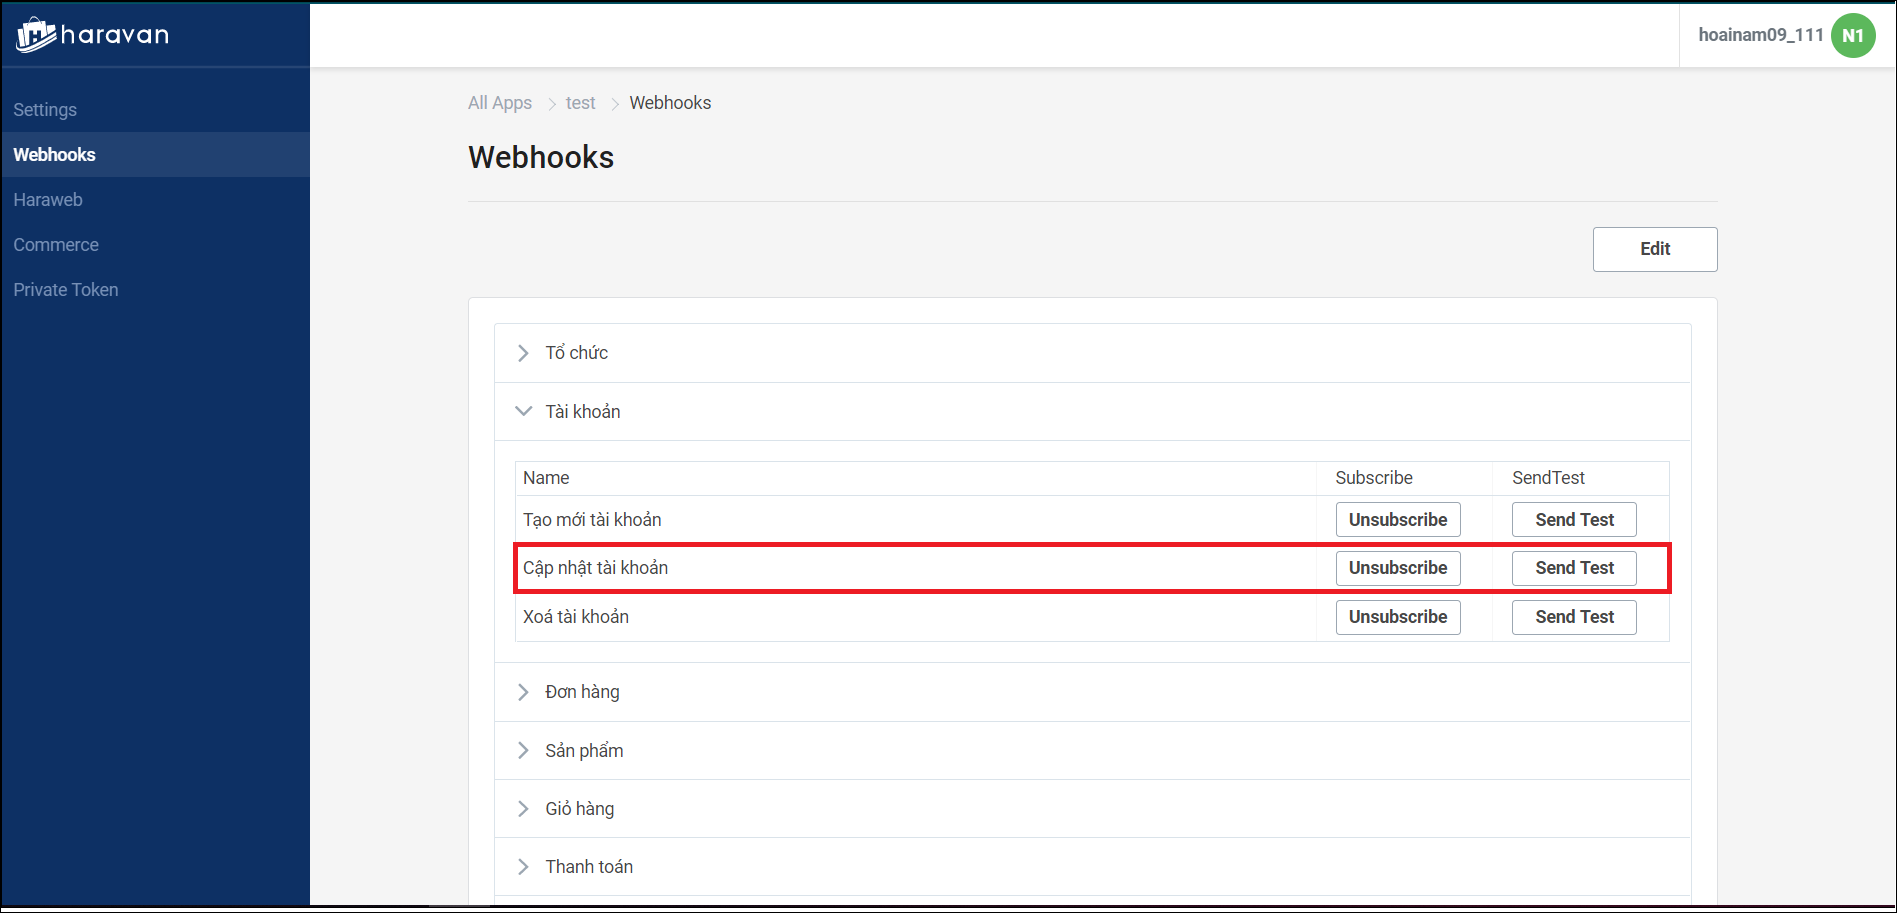 Receive notifications from webhook